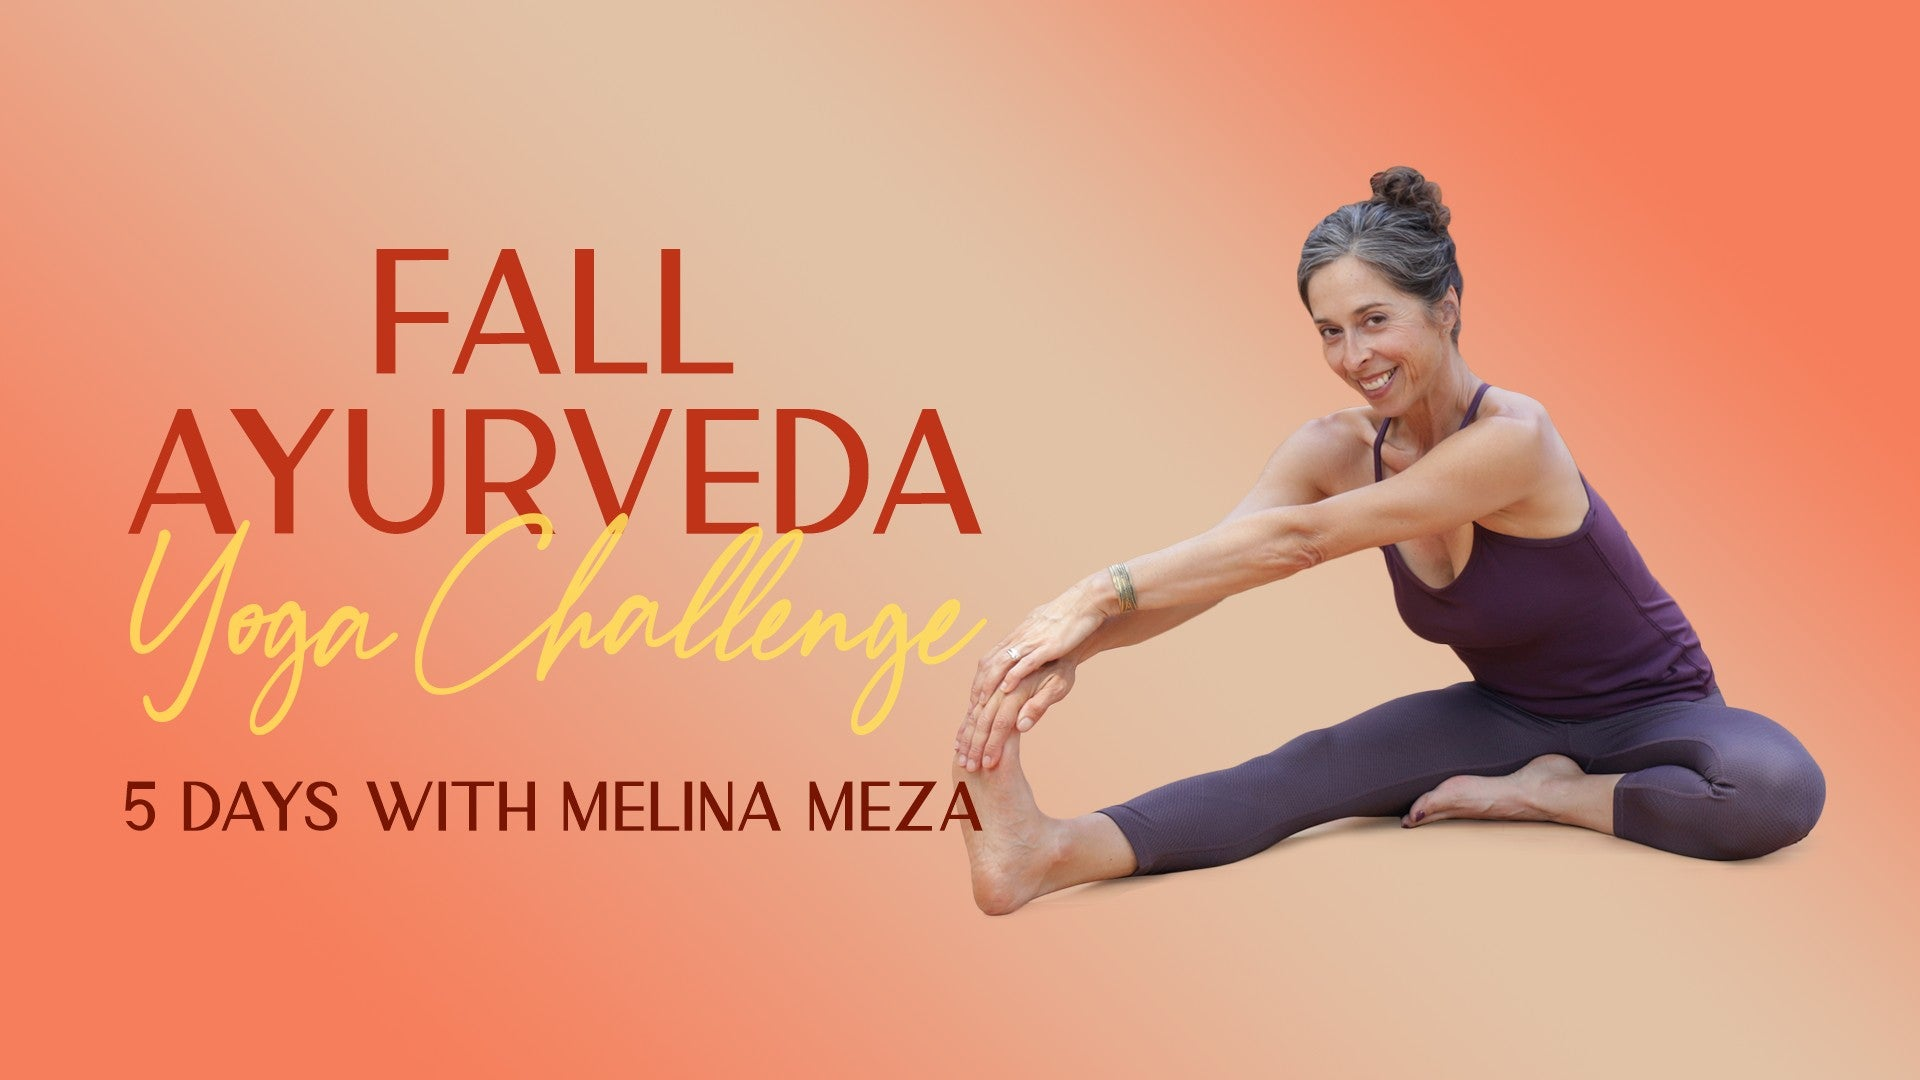 Fall Ayurveda Yoga Challenge Artwork